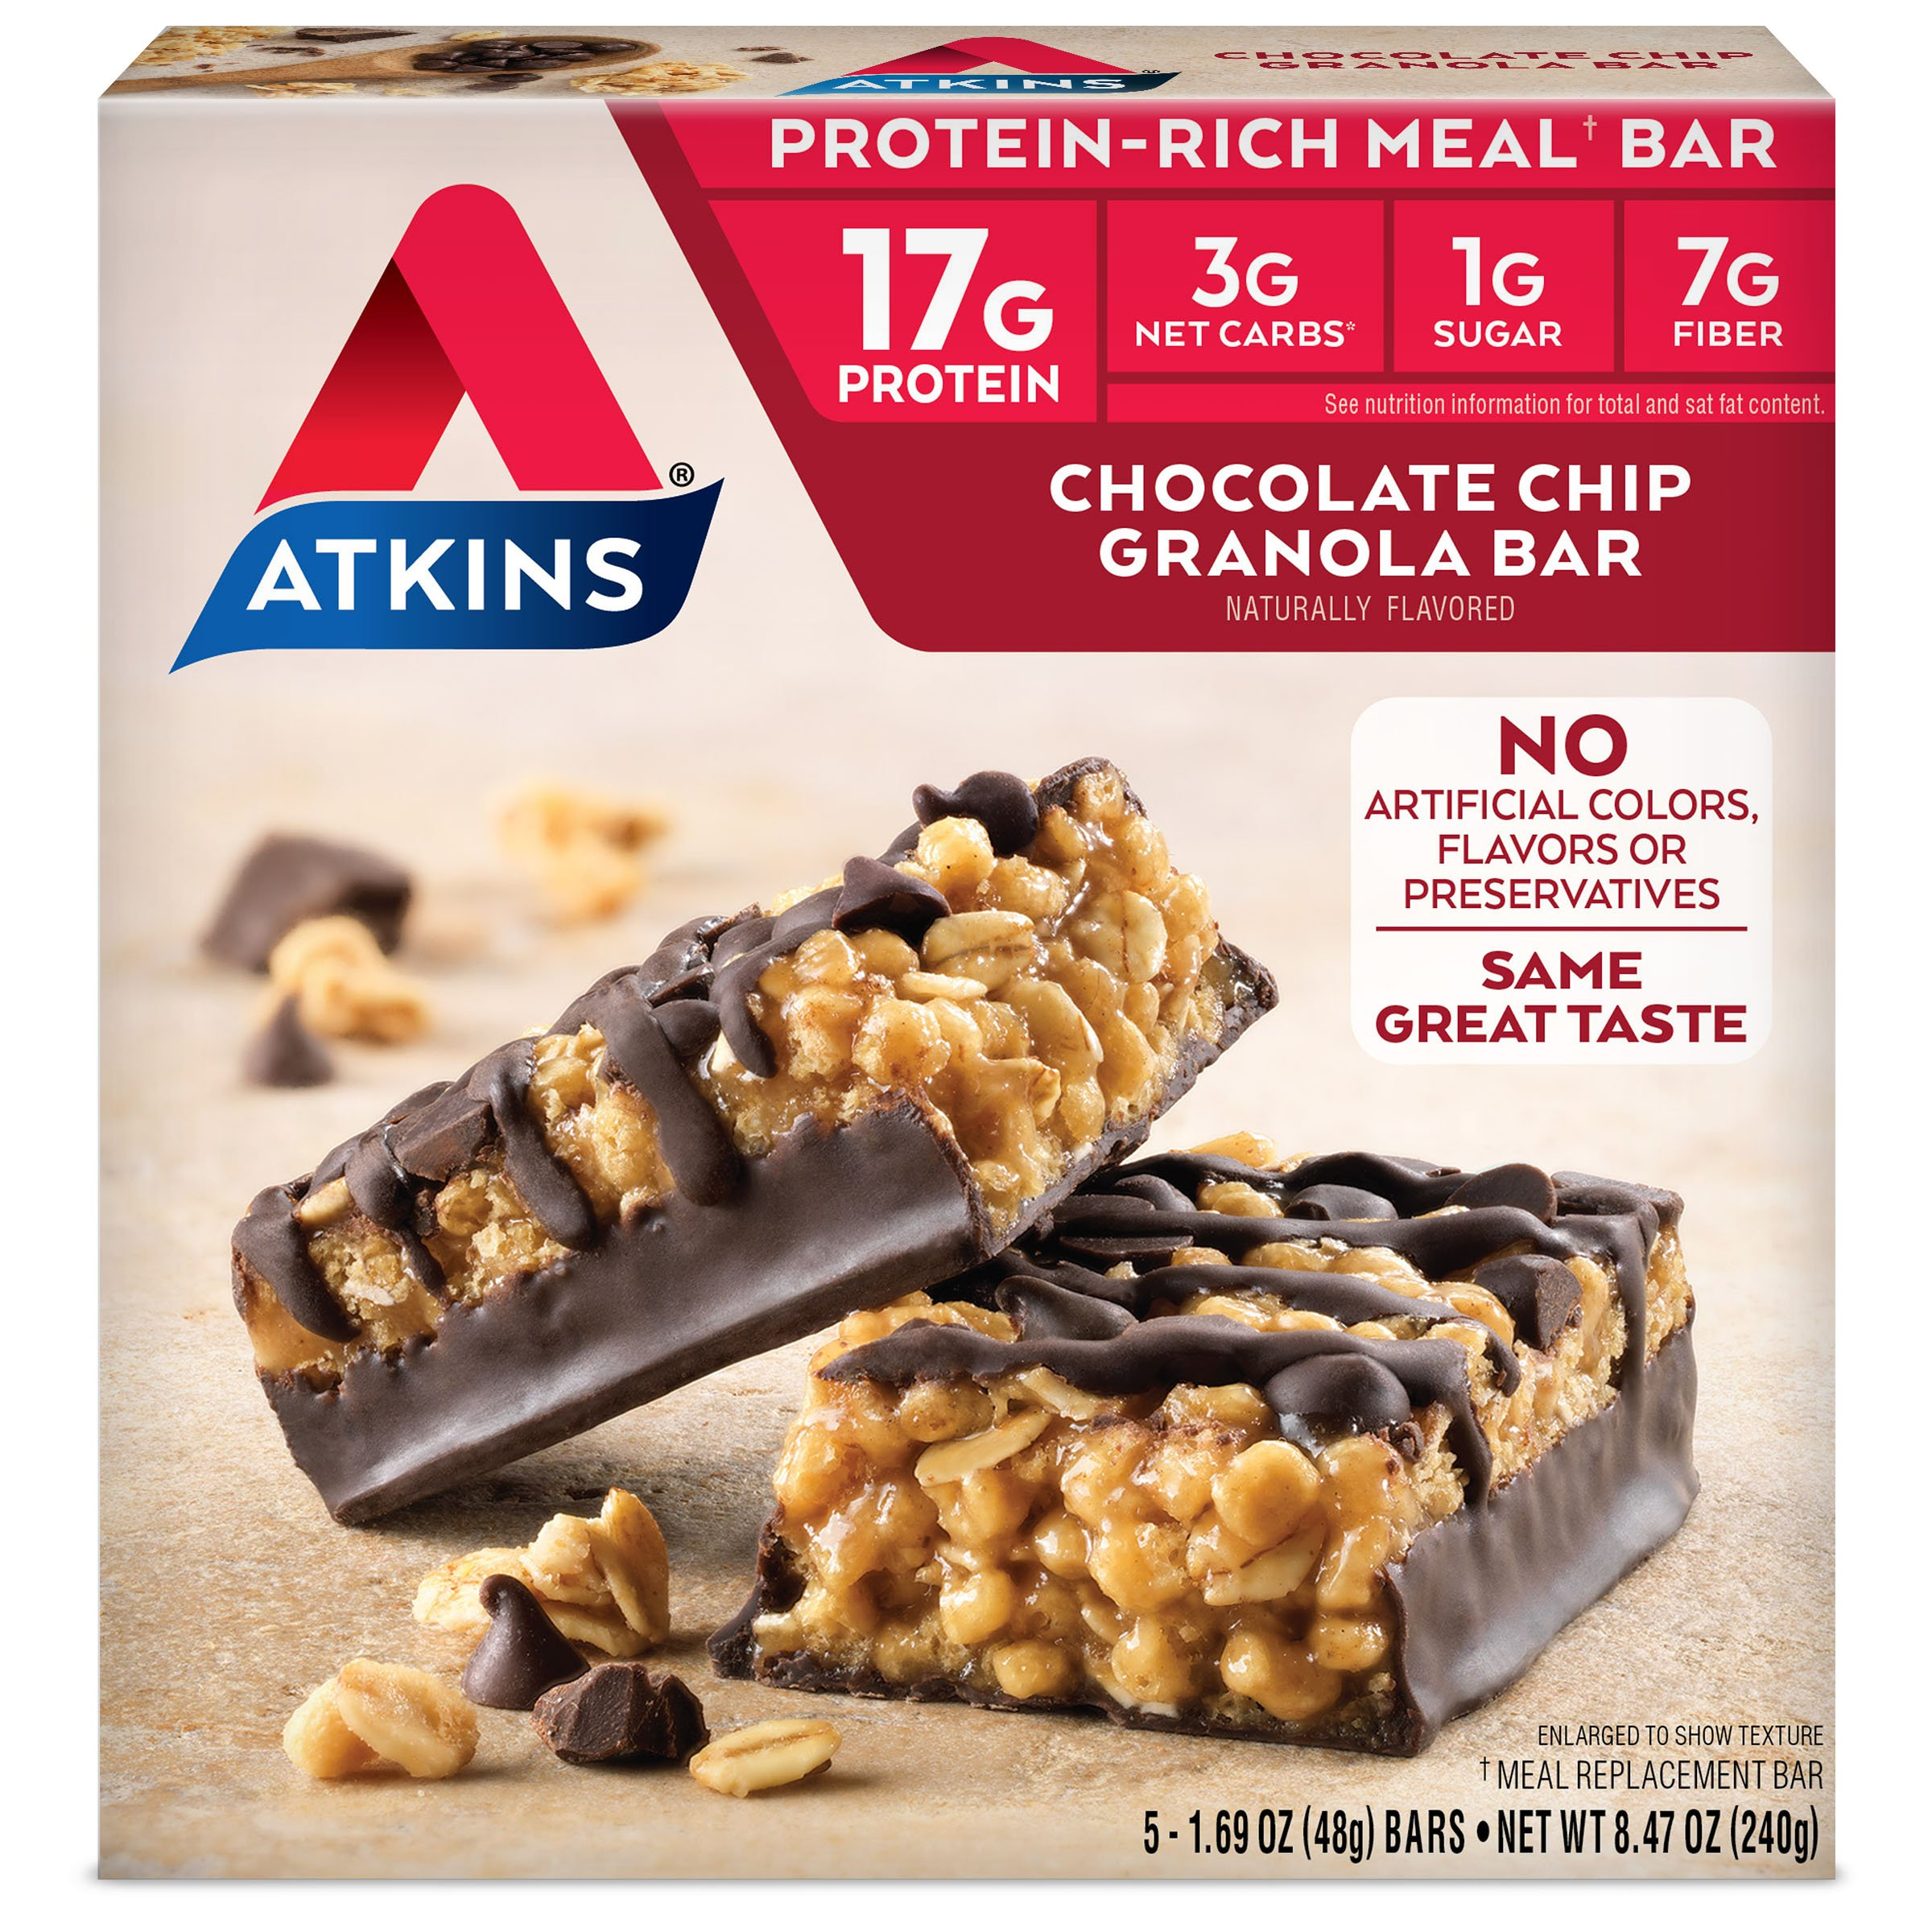 Atkins Protein-Rich Meal Bar, Chocolate Chip Granola, 5 Count